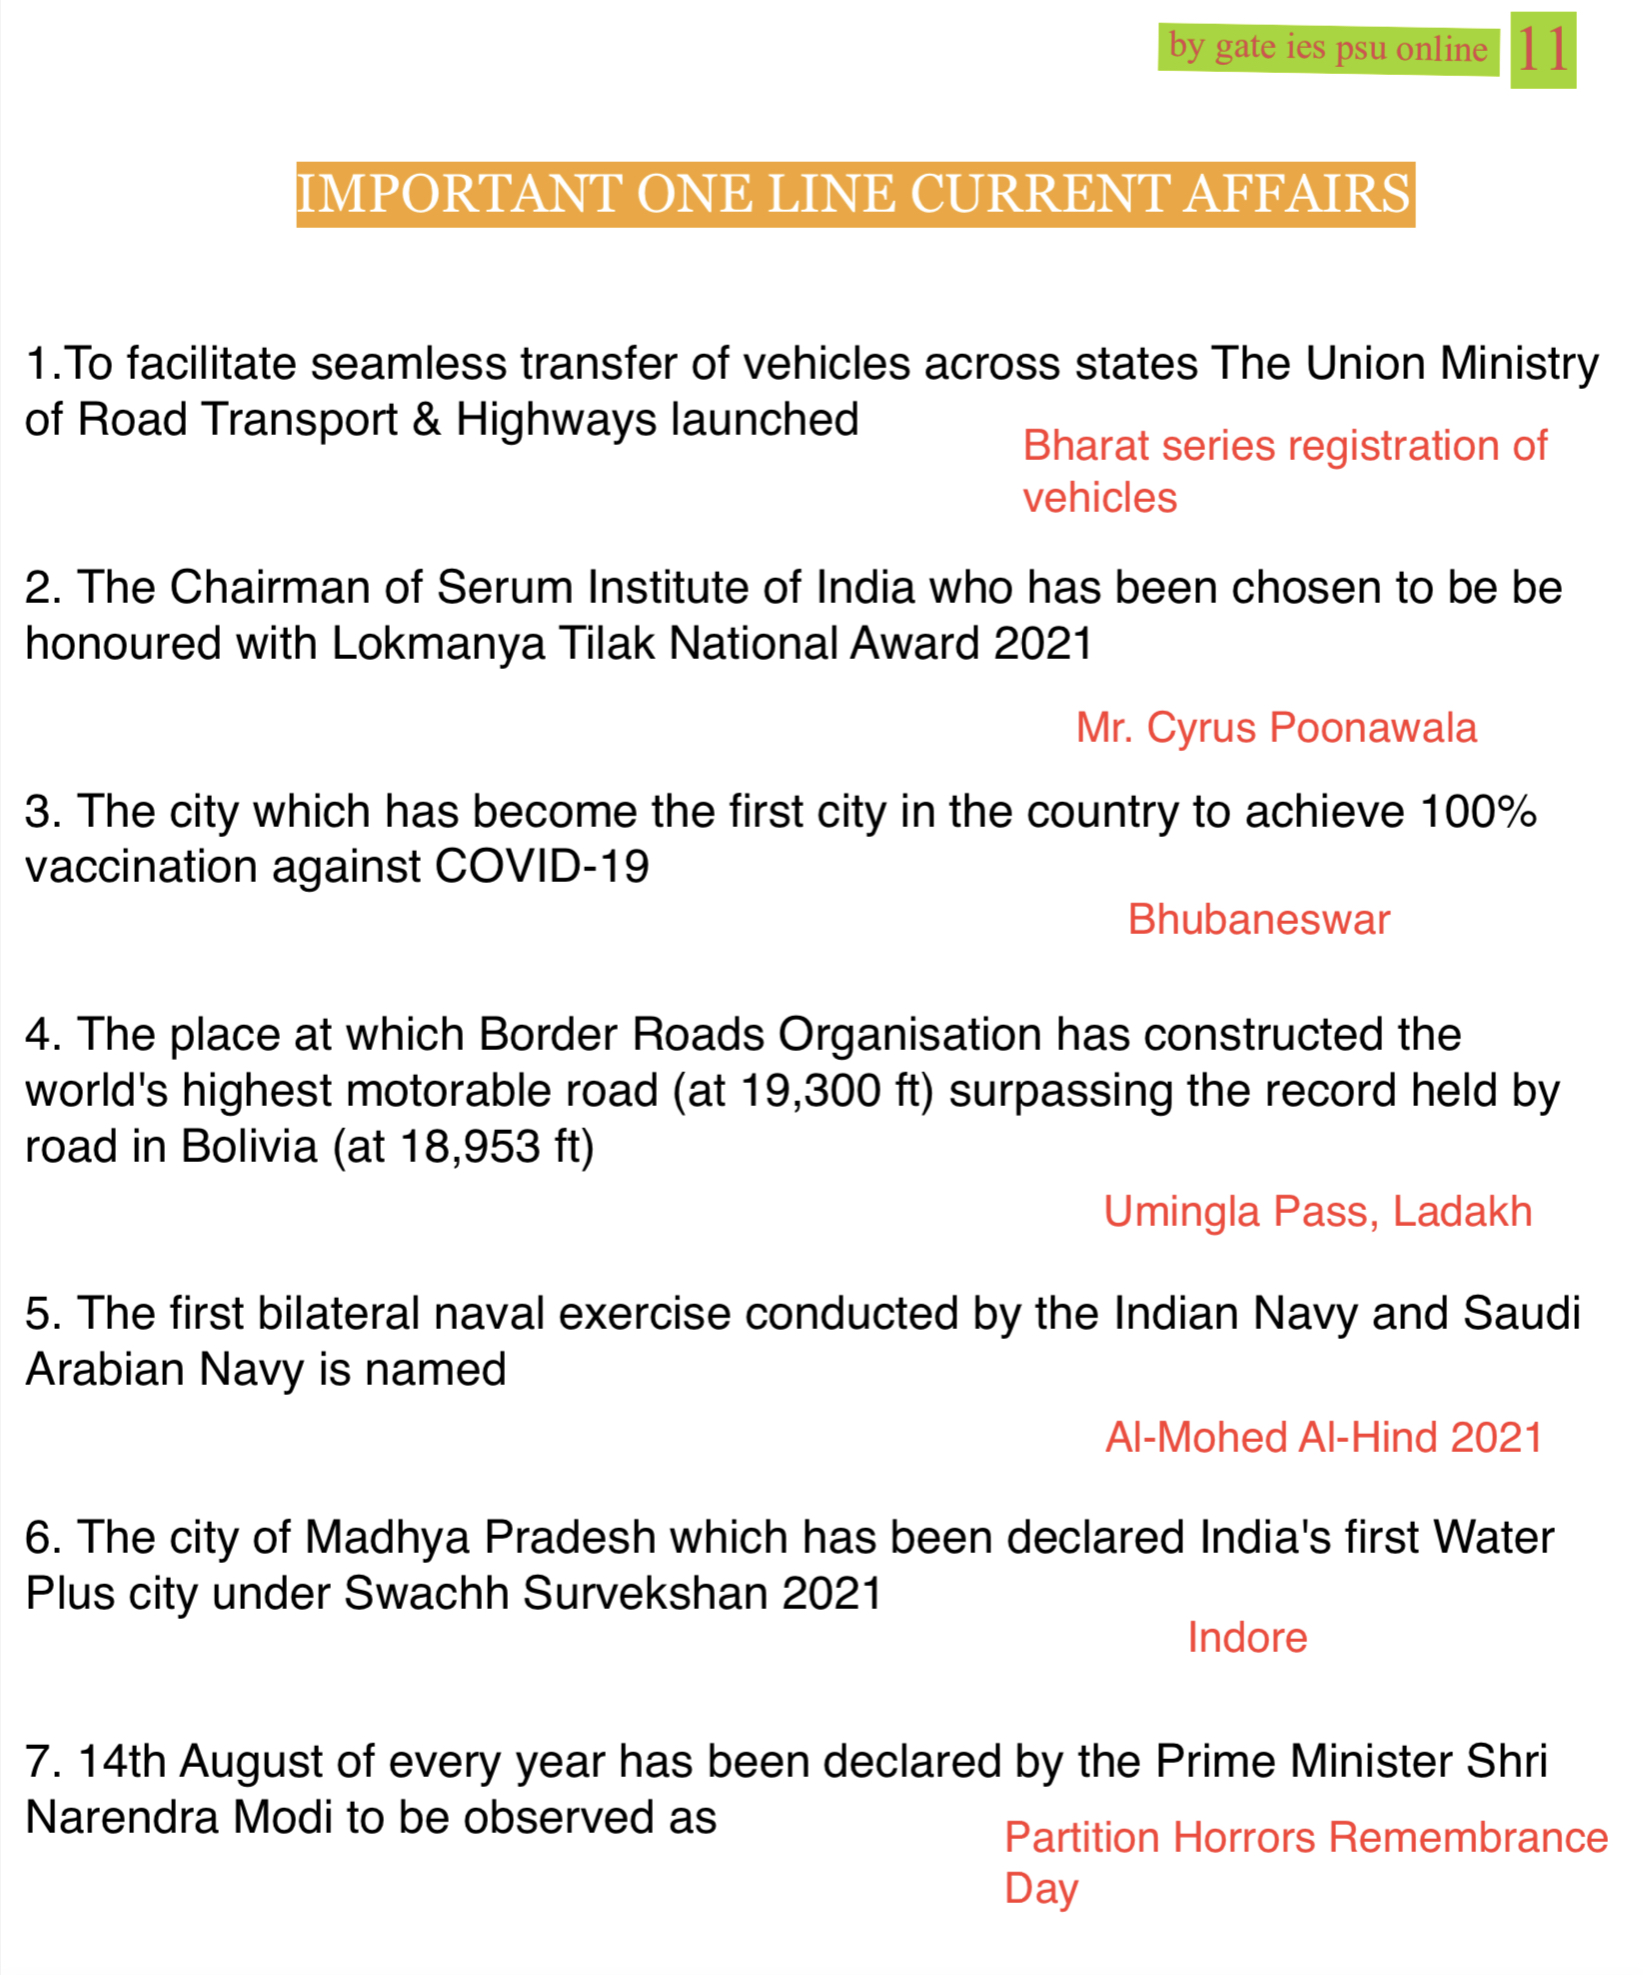 one liner current affairs august 2021